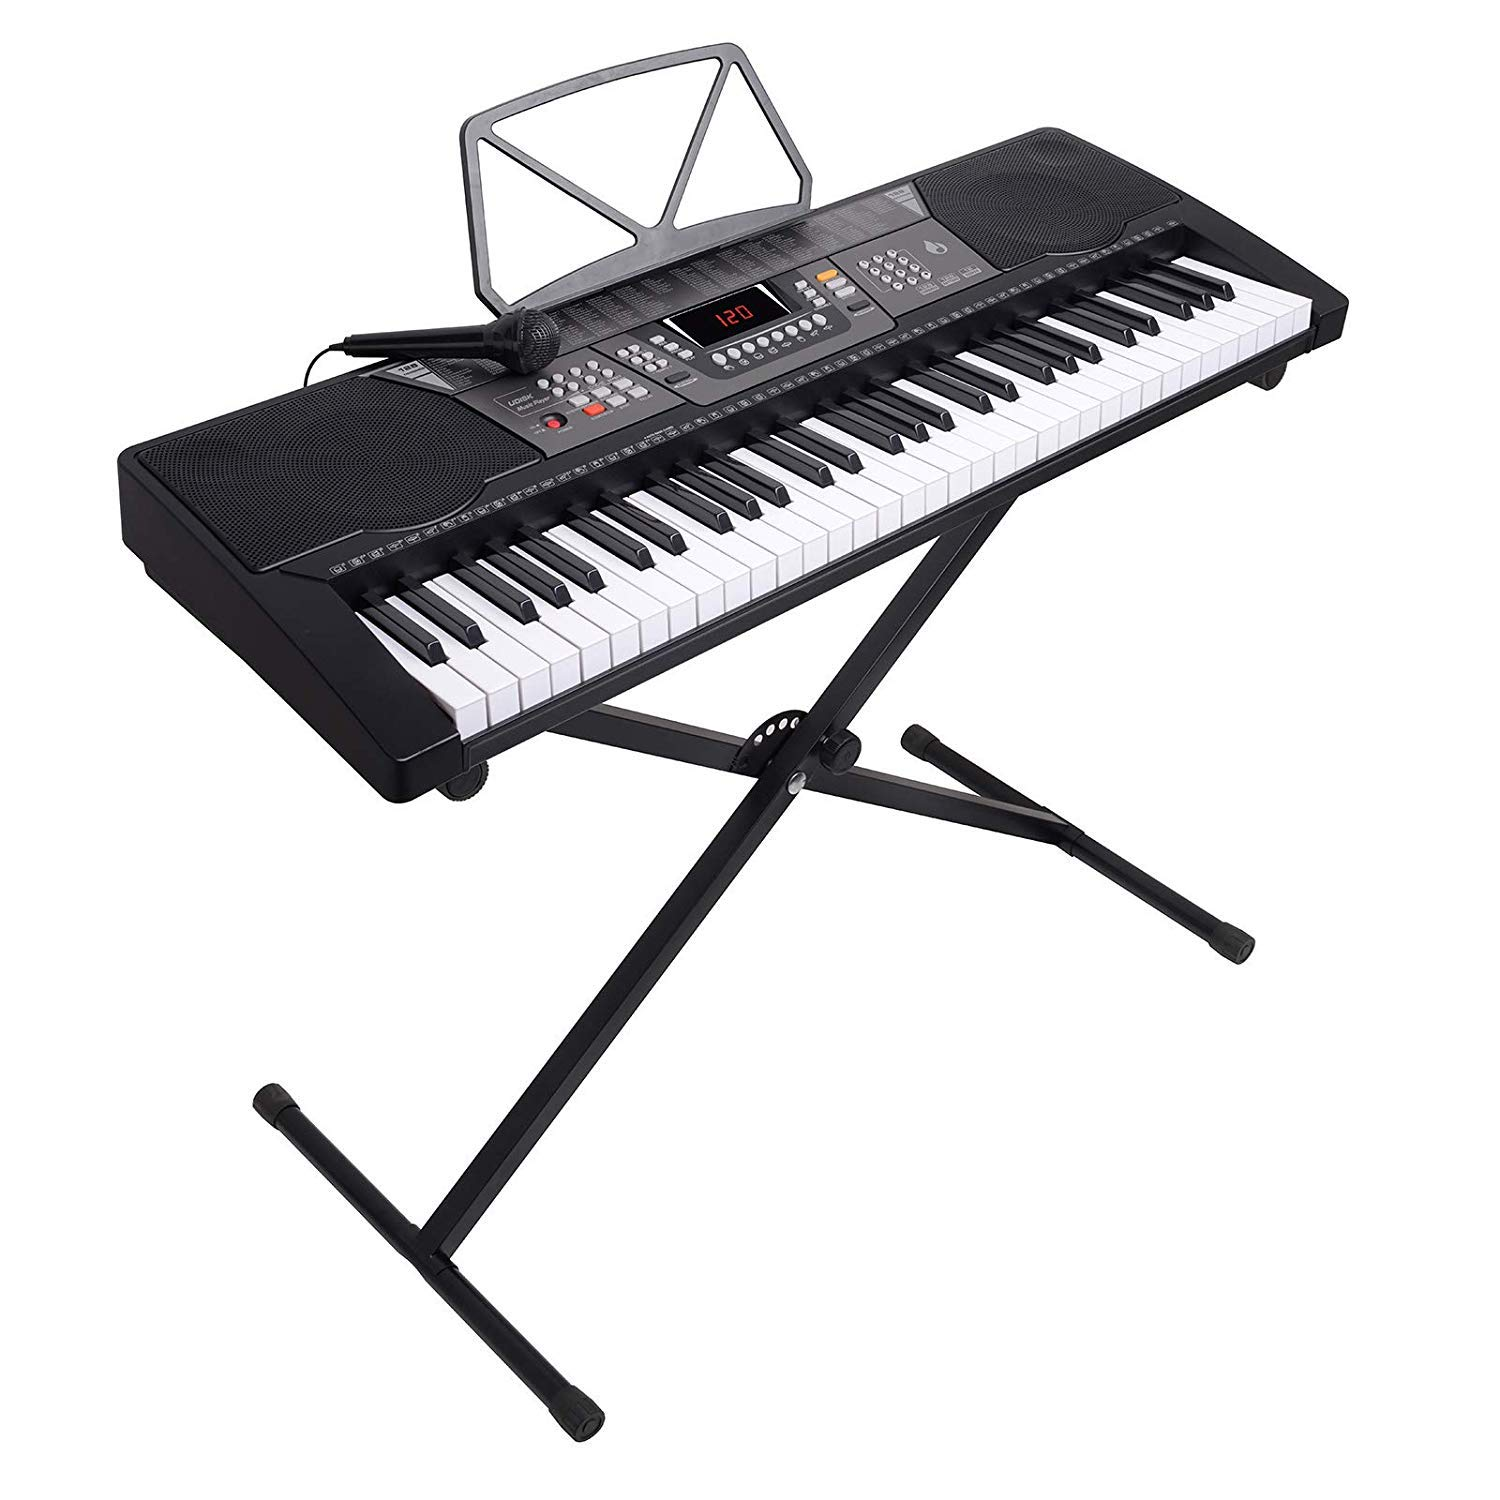 LAGRIMA 61 Key Portable Electric Piano Music Keyboard W/X Stand, Power Supply,